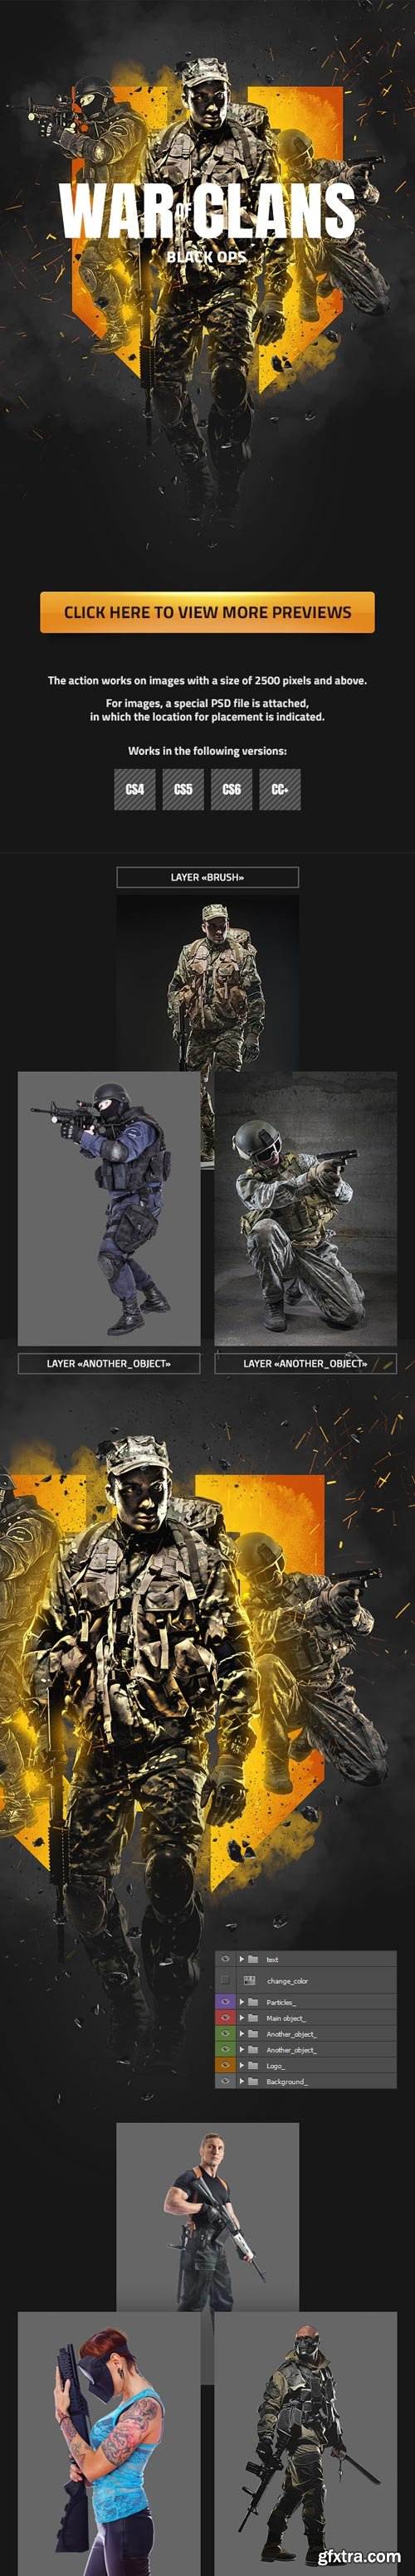 GraphicRiver - War Of Clans Photoshop Action - 22778606